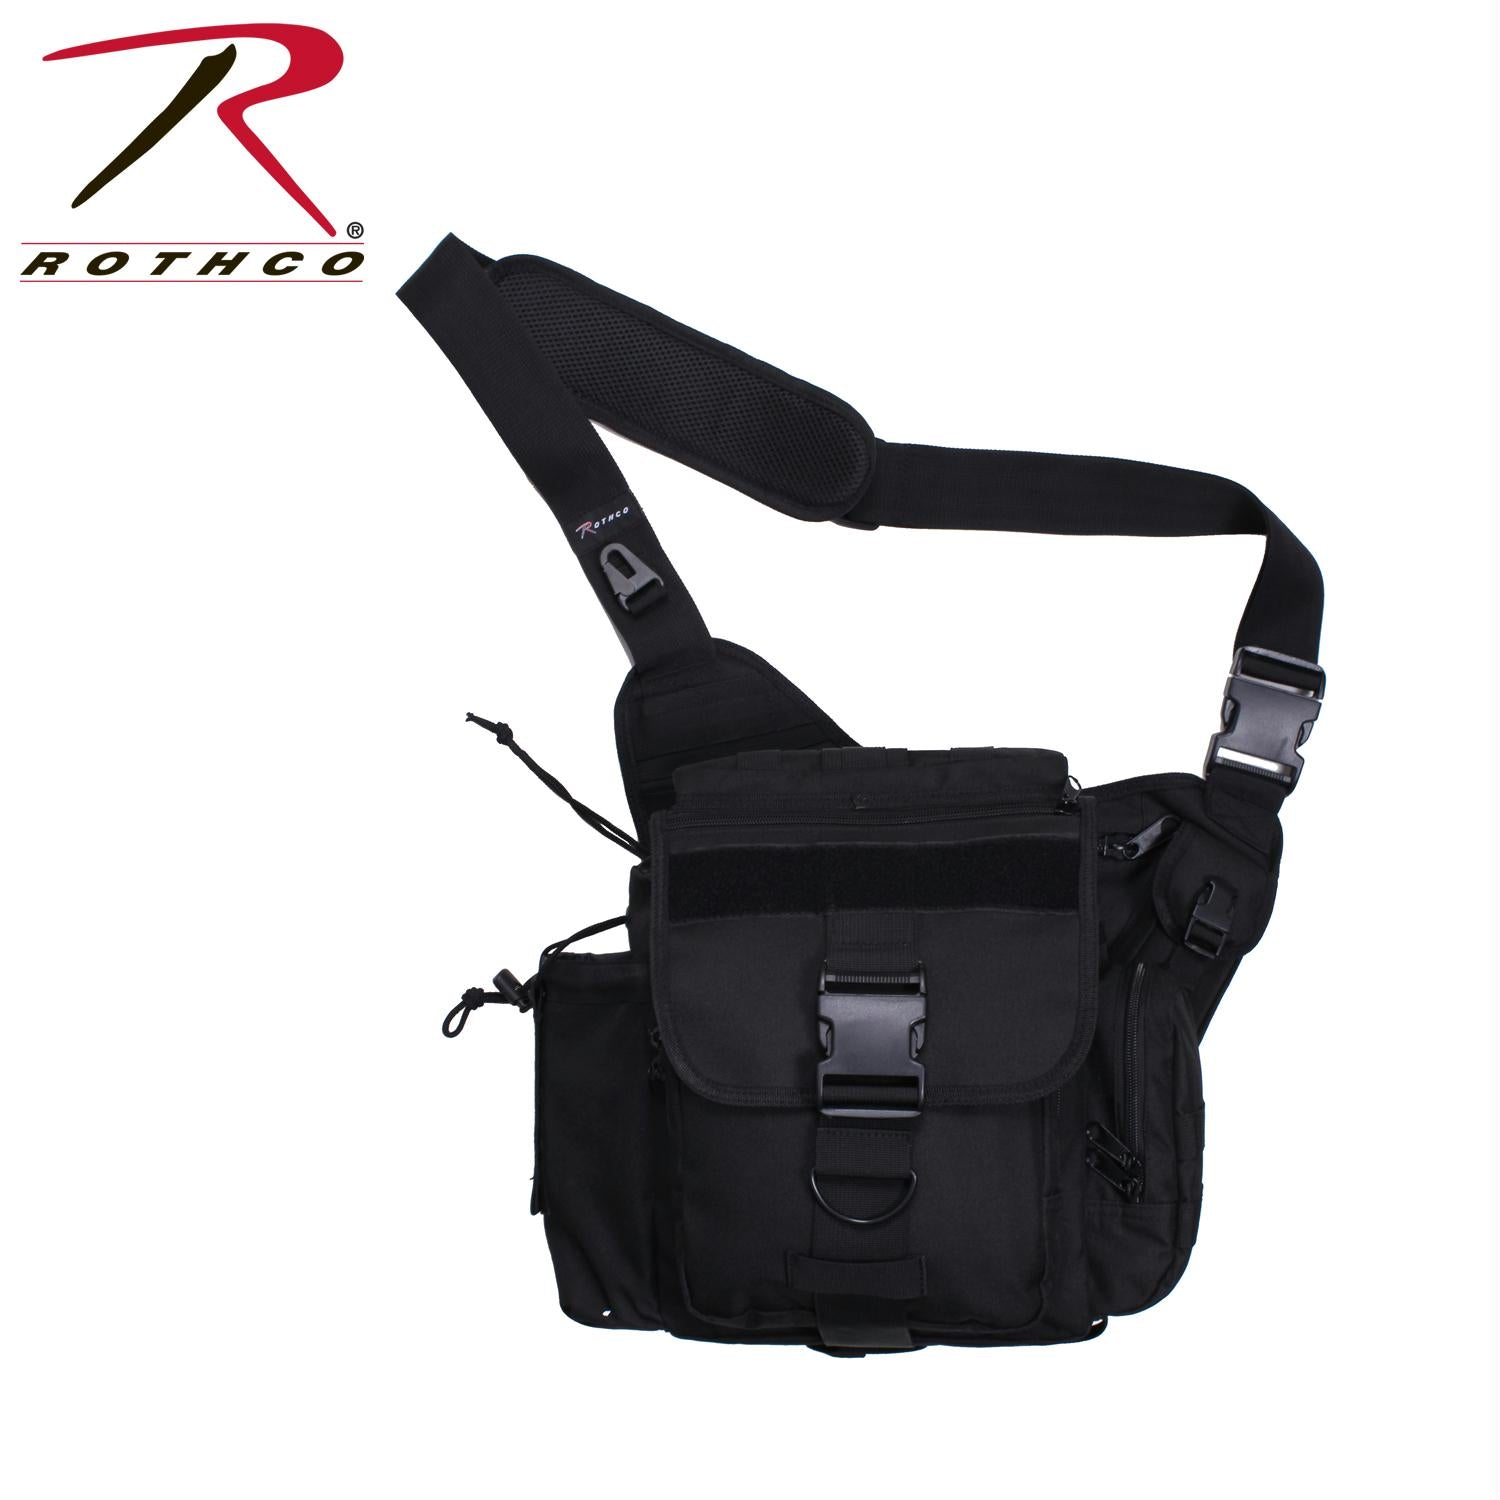 Rothco XL Advanced Tactical Shoulder Bag - Black